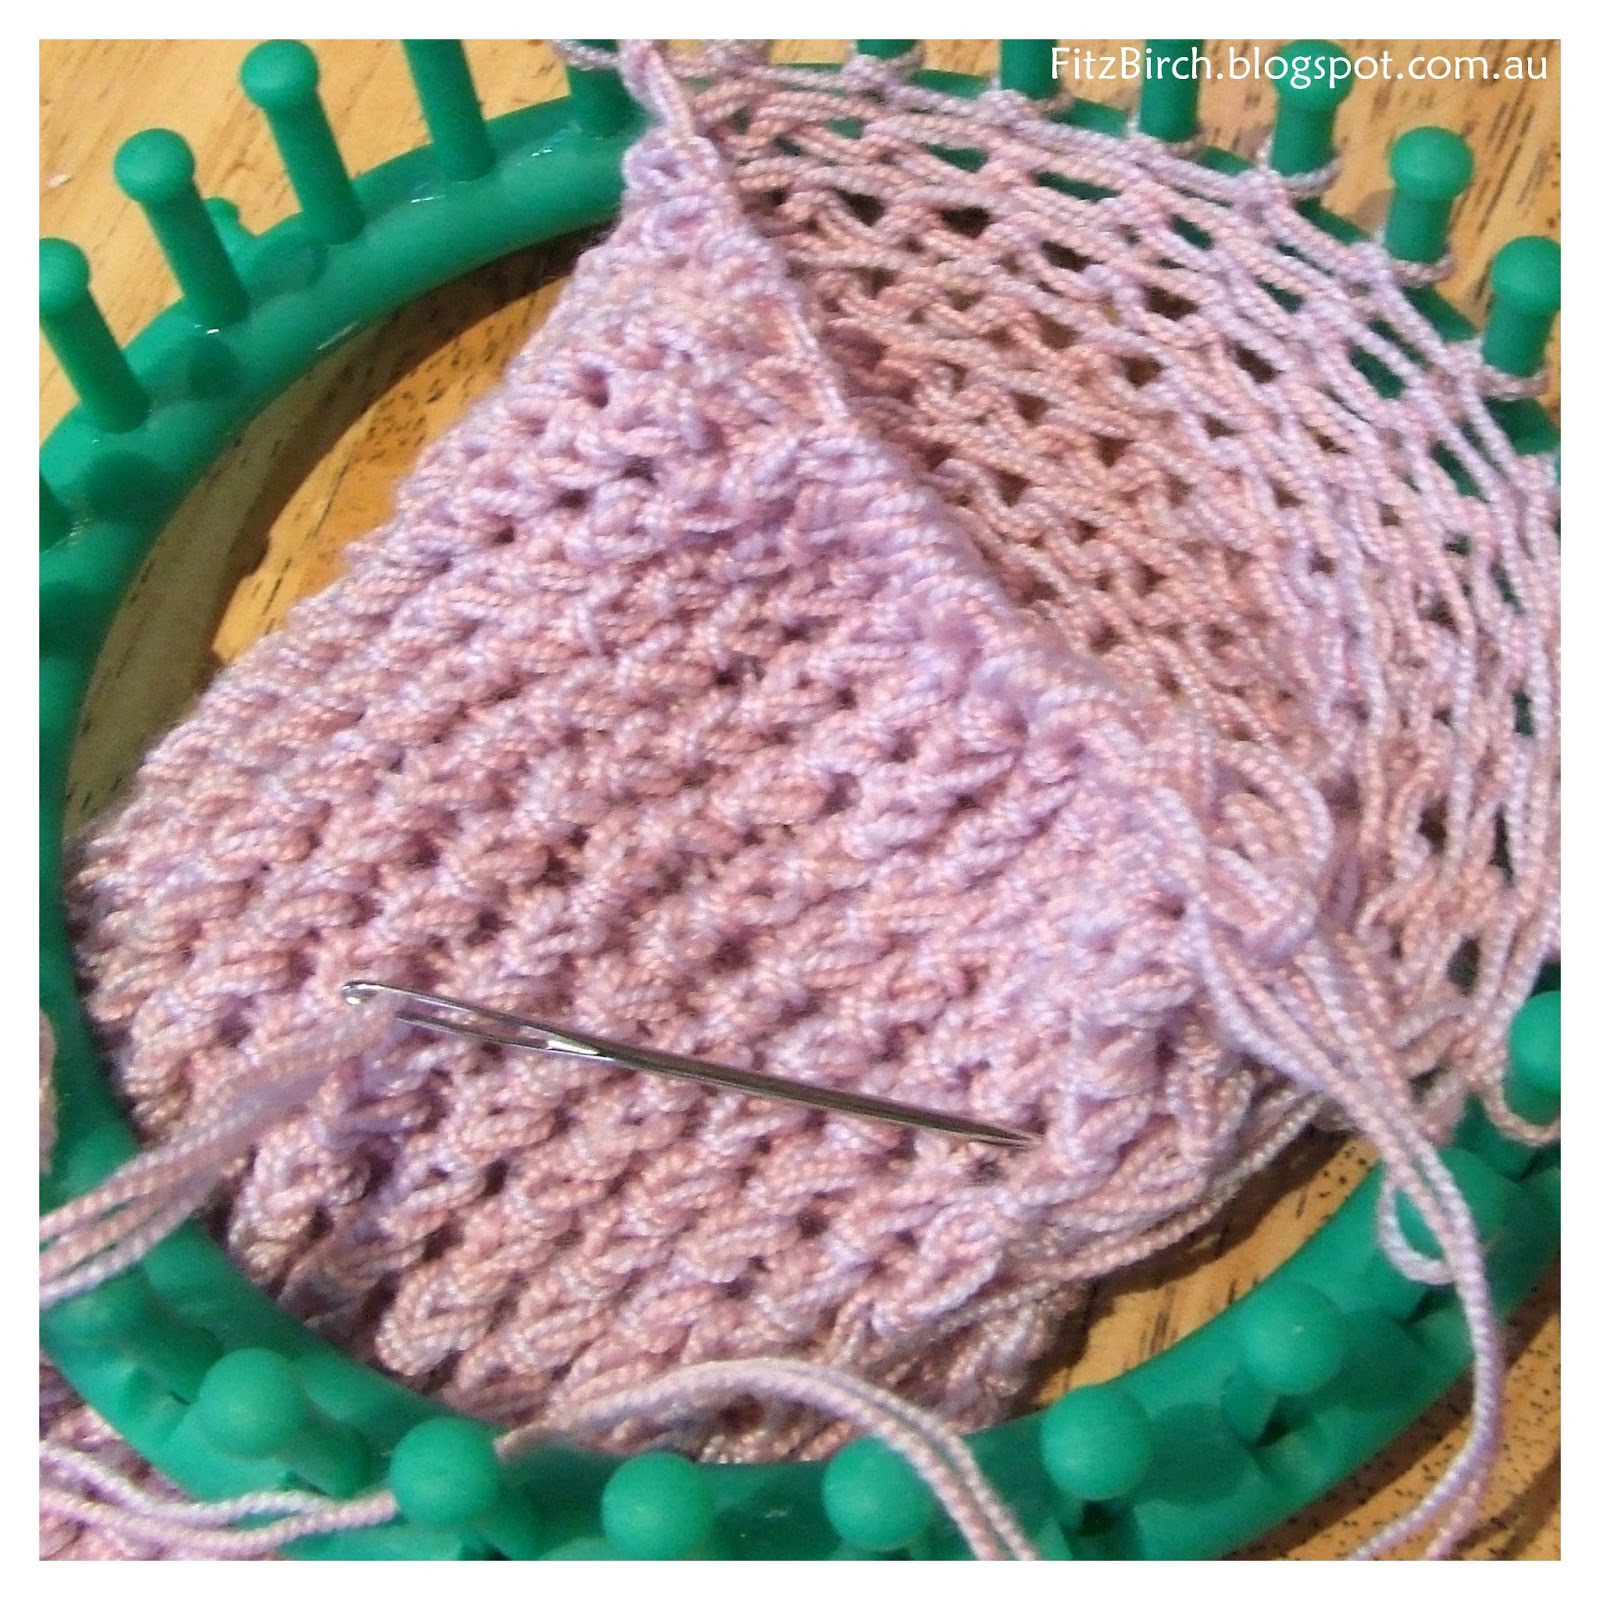 Knitting Loom Uses : Fitzbirch crafts loom knit tea cosy